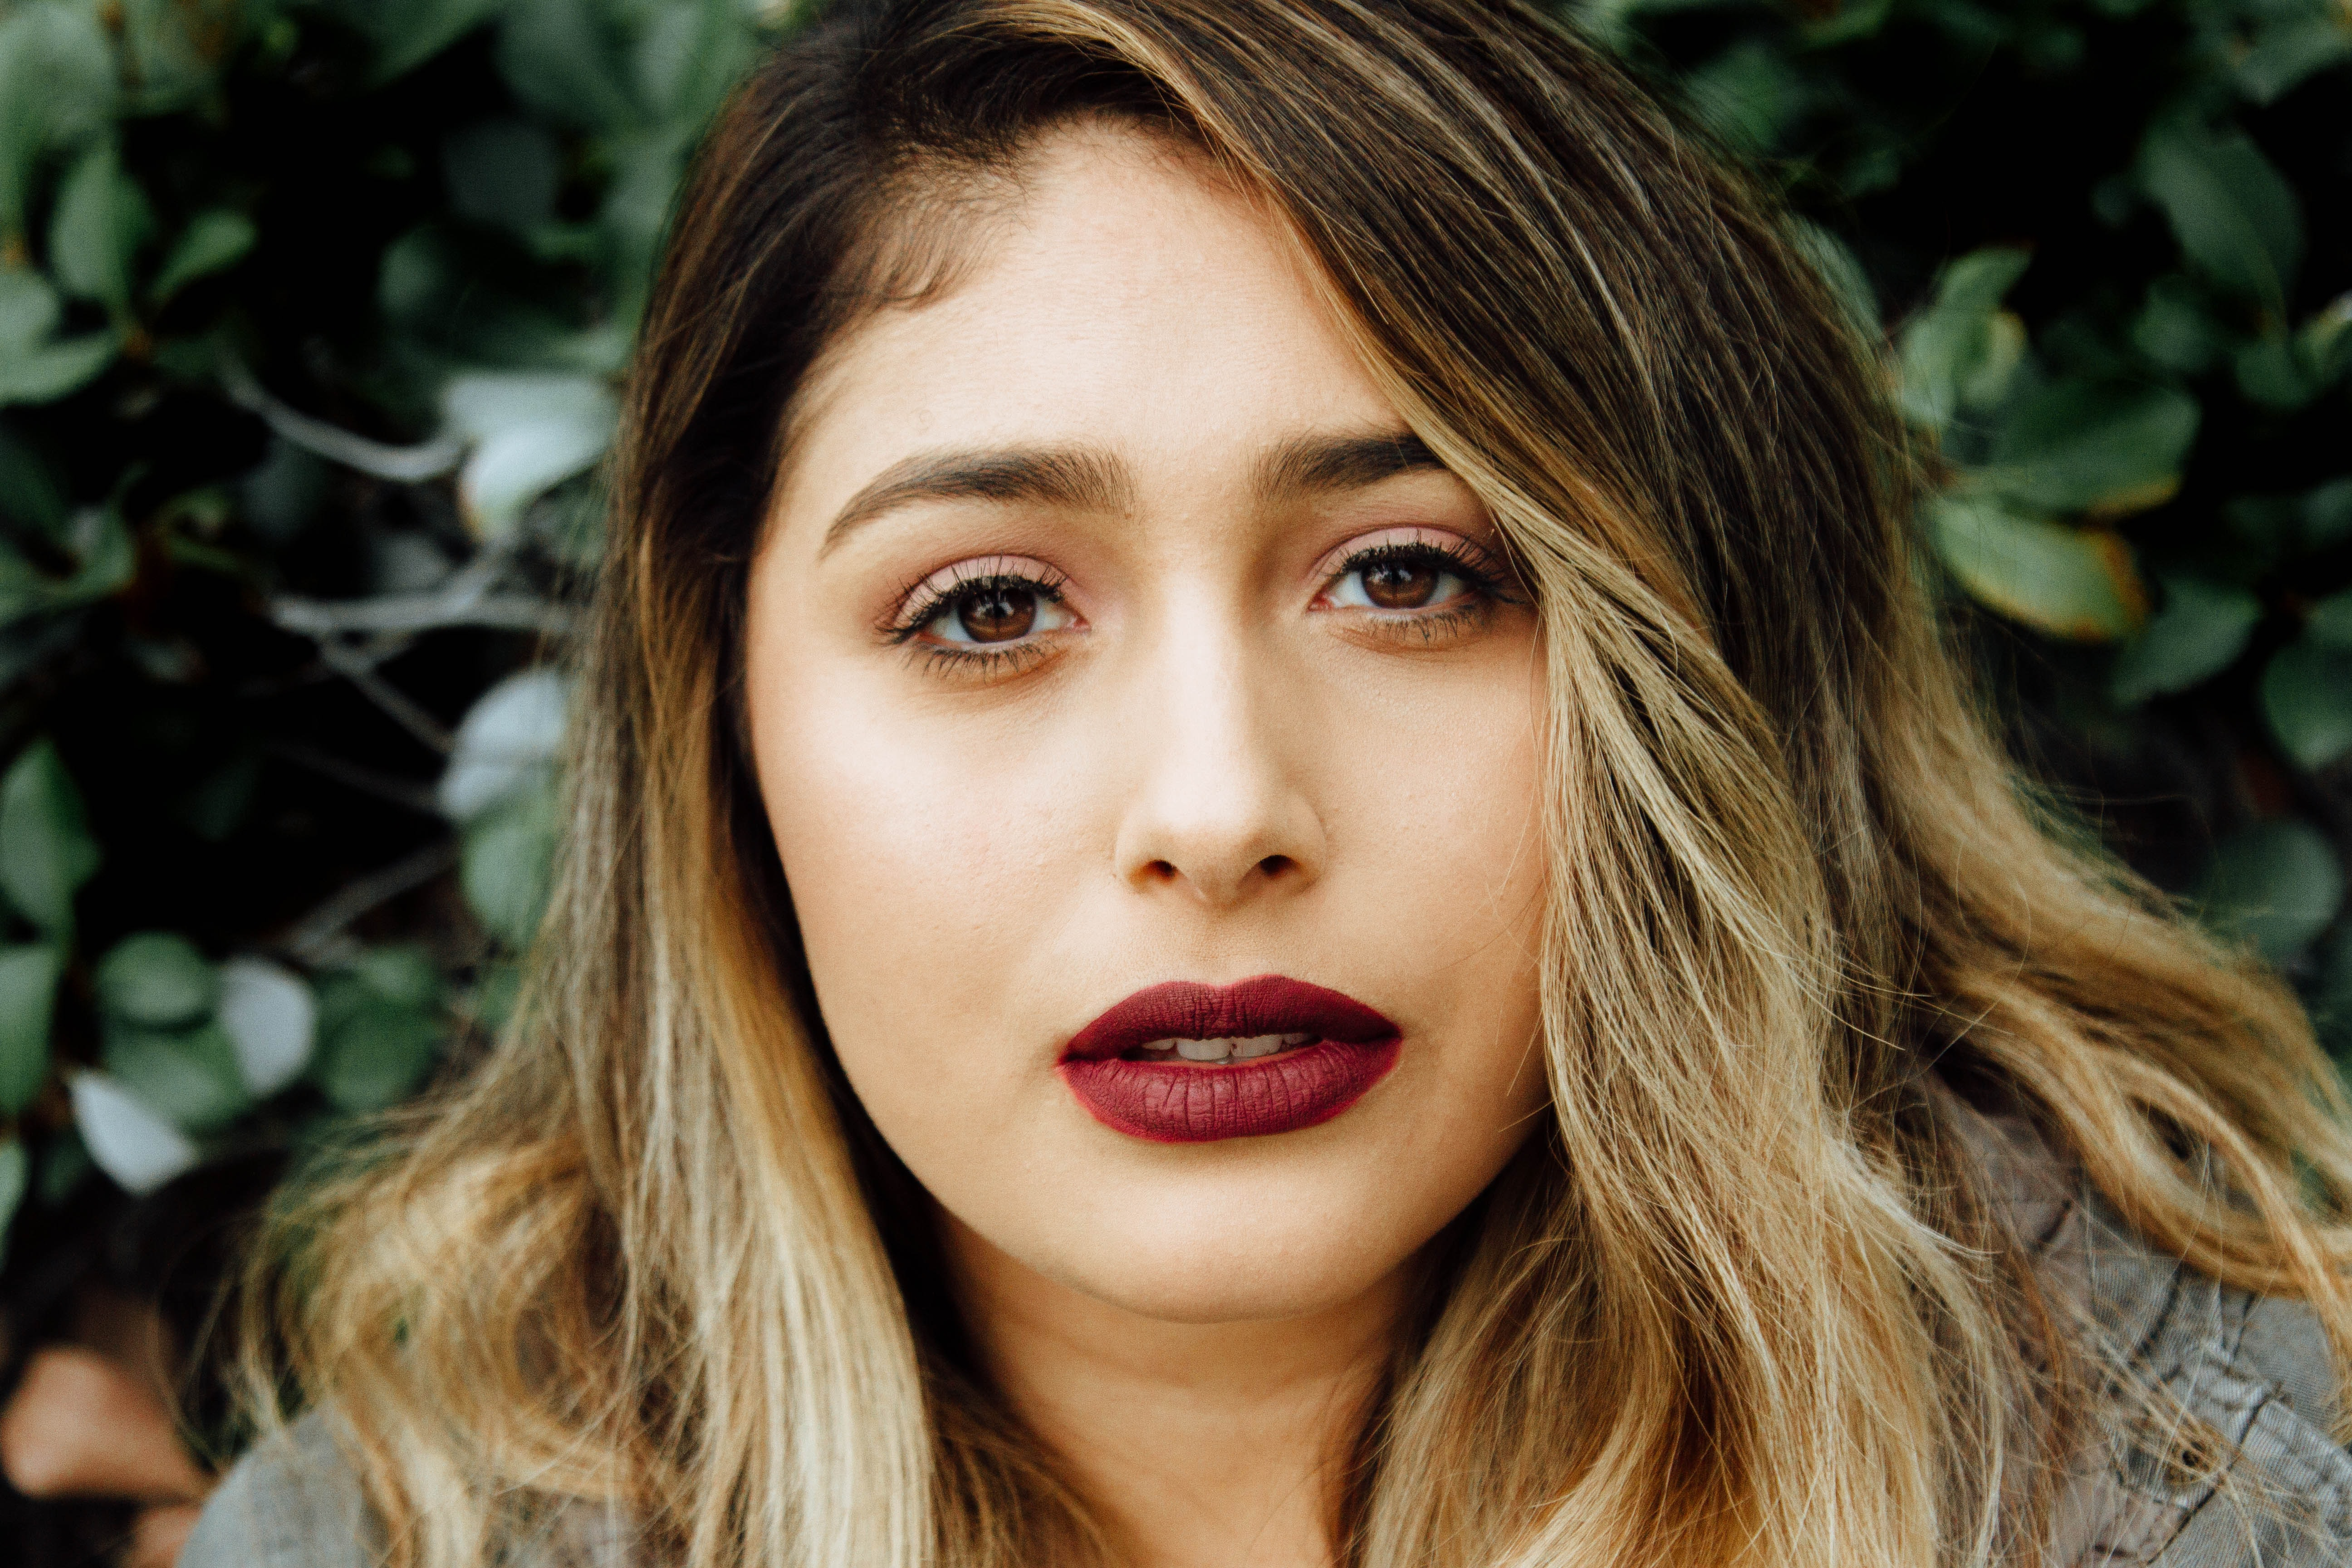 Woman with ombre hair and a bold red lip looking concerned